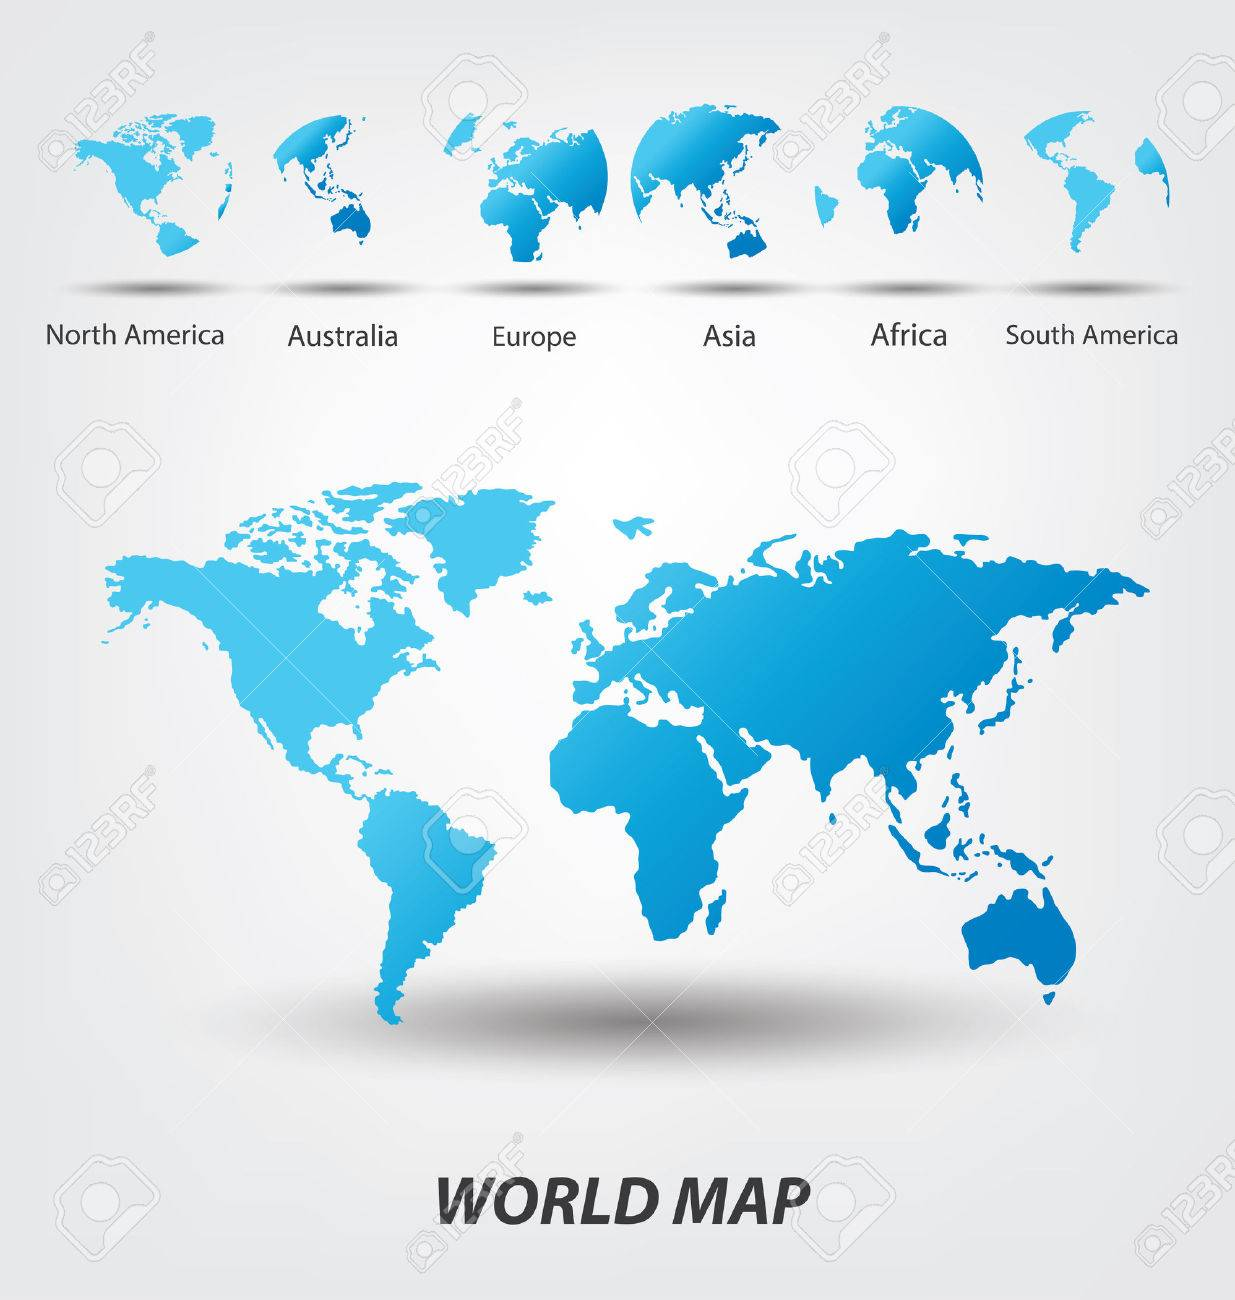 World Map Vector Illustration Royalty Free Cliparts Vectors And - Usa map north south east west